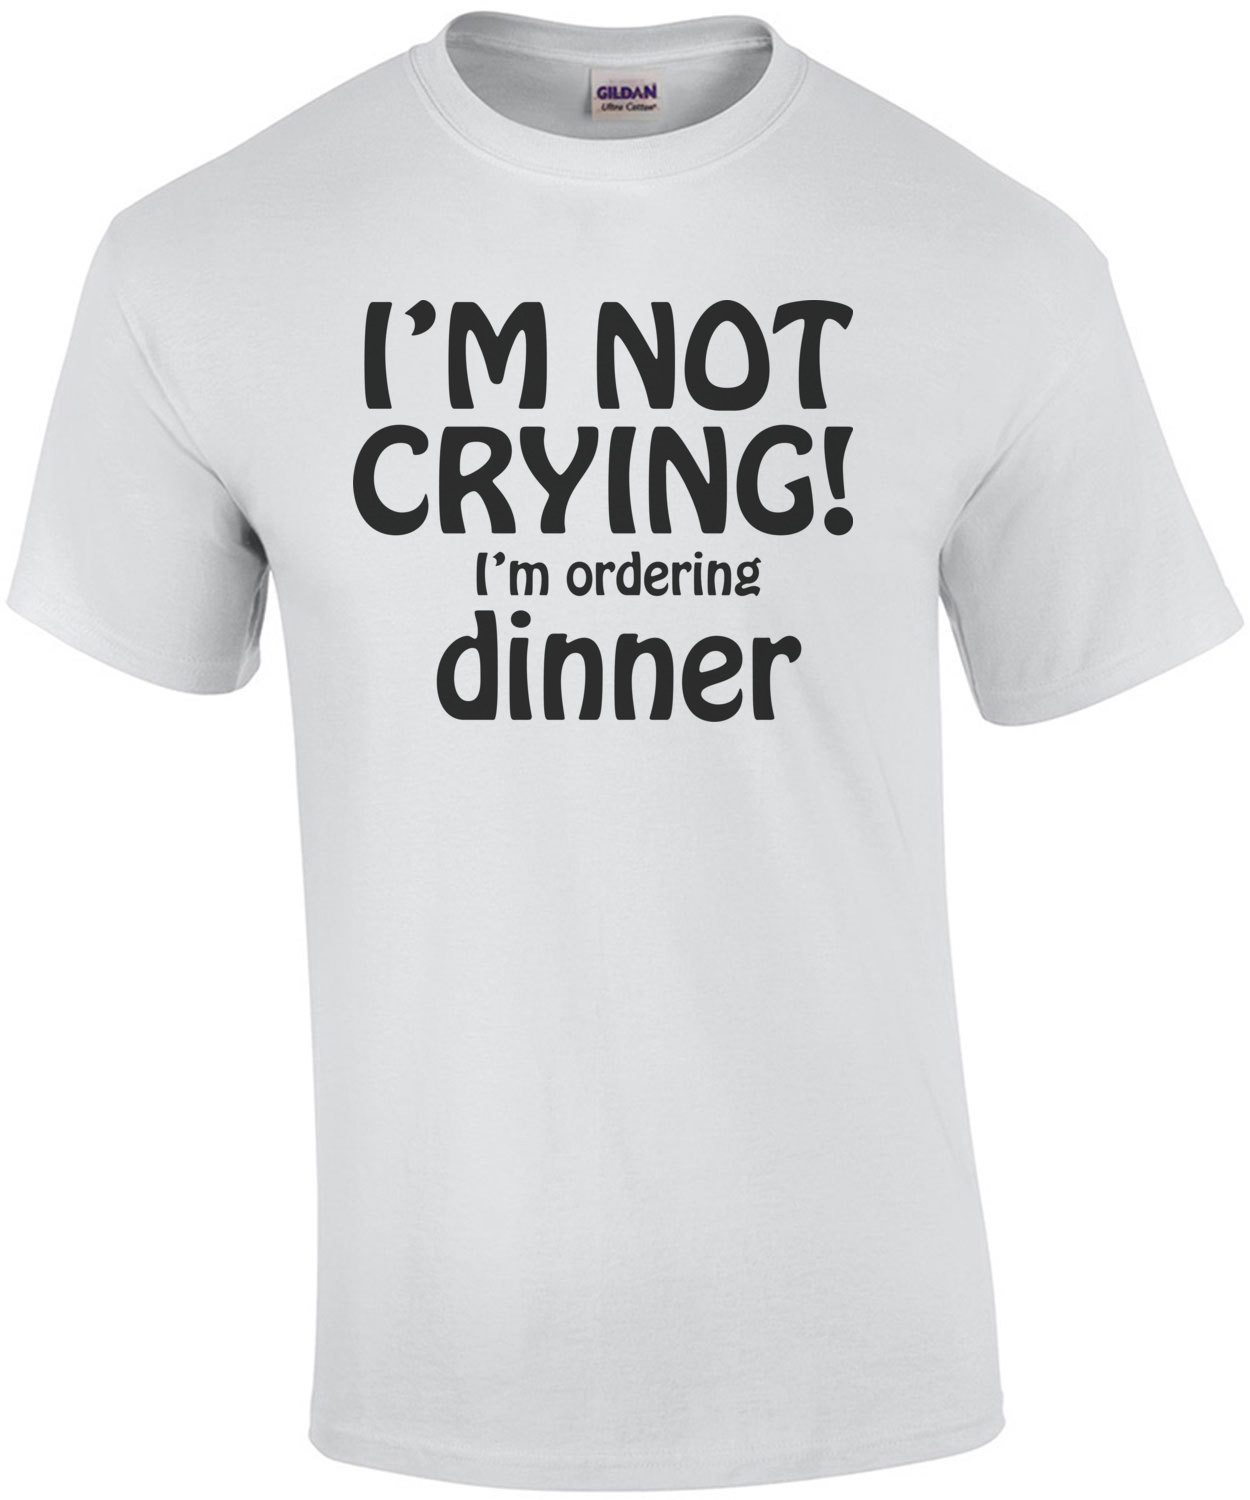 I'm Not Crying! I'm Ordering Dinner Baby Shirt